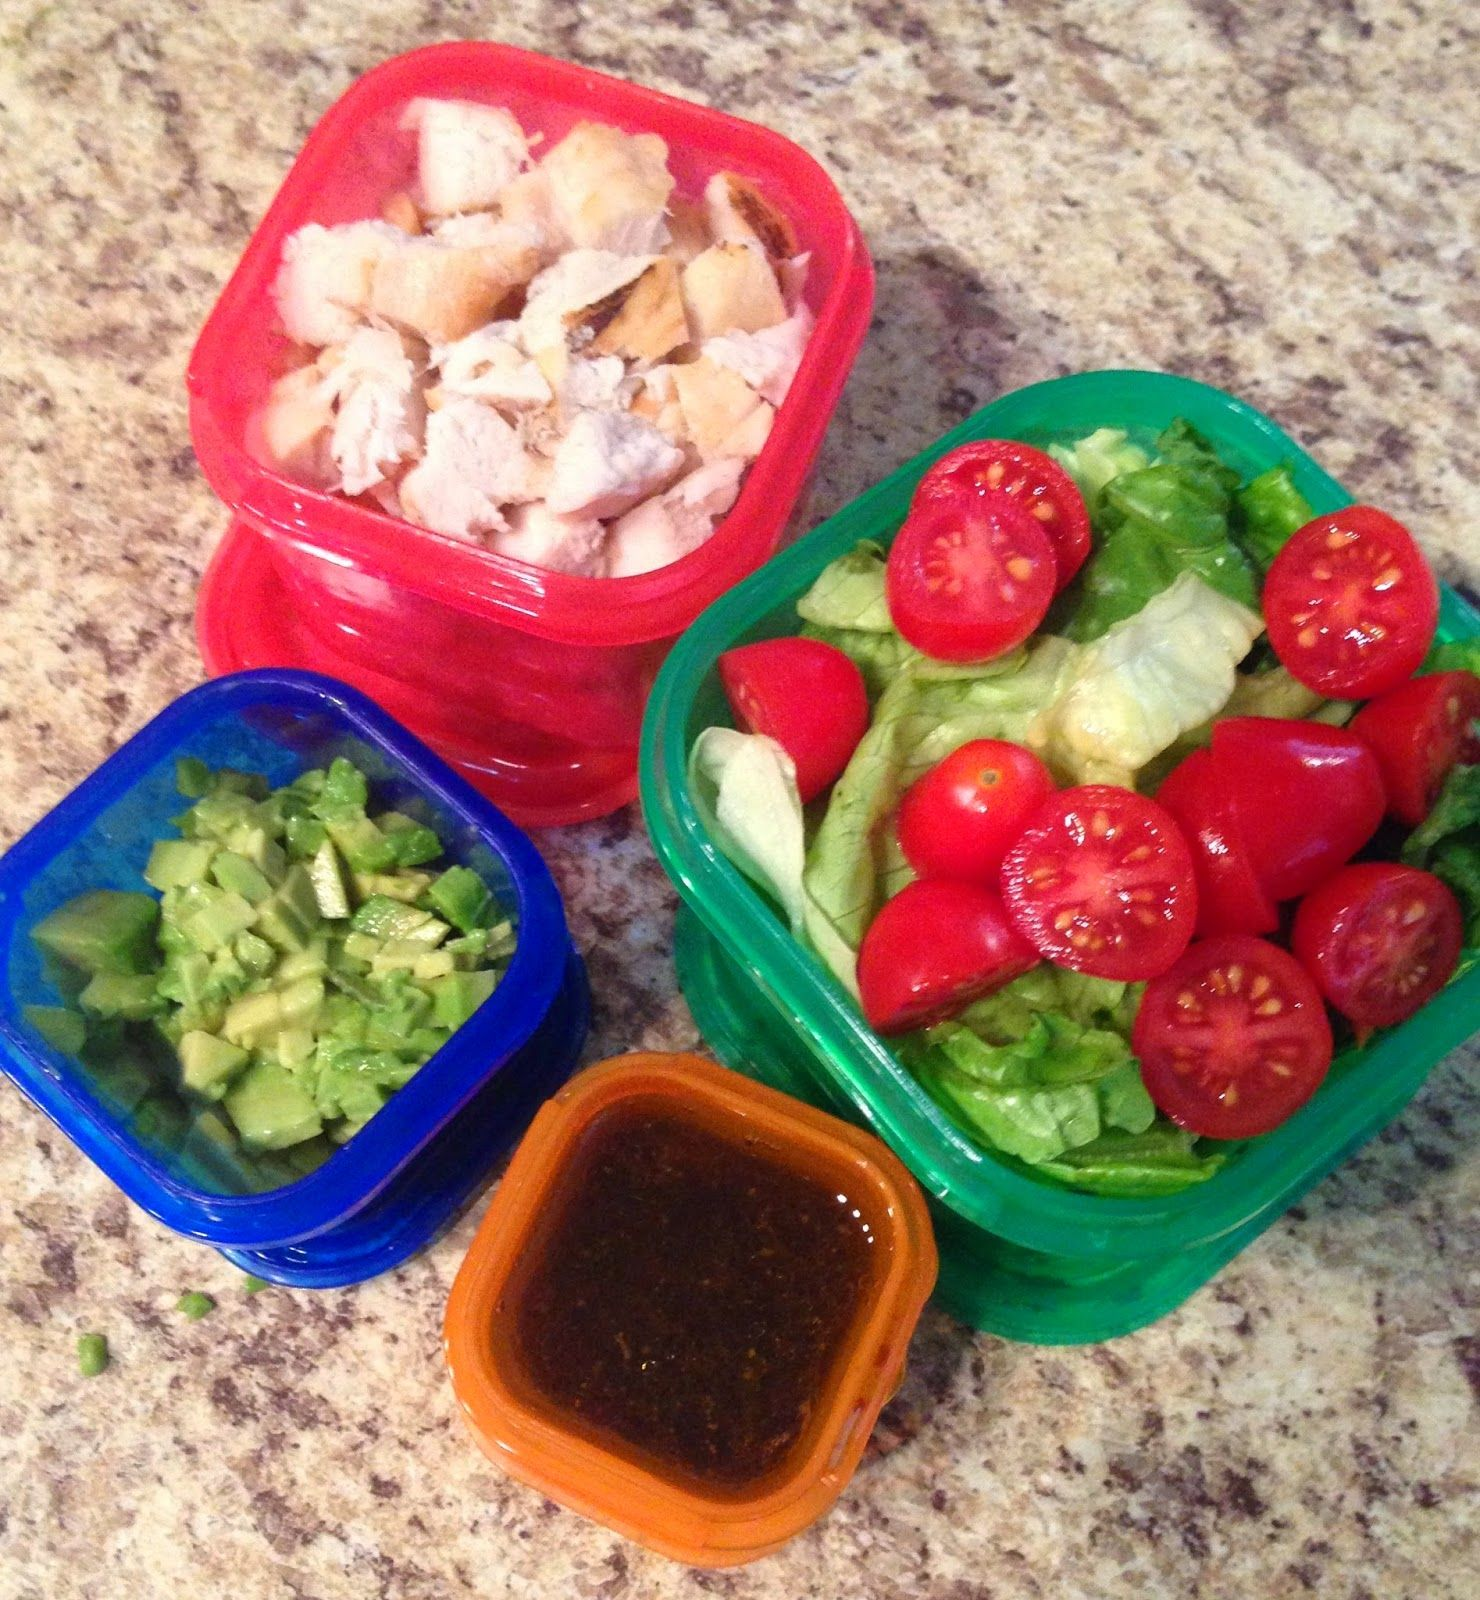 21 Day Fix Lunch Lettuce And Cherry Tomatoes 1 Green Grilled Chicken 1 Red Chopped